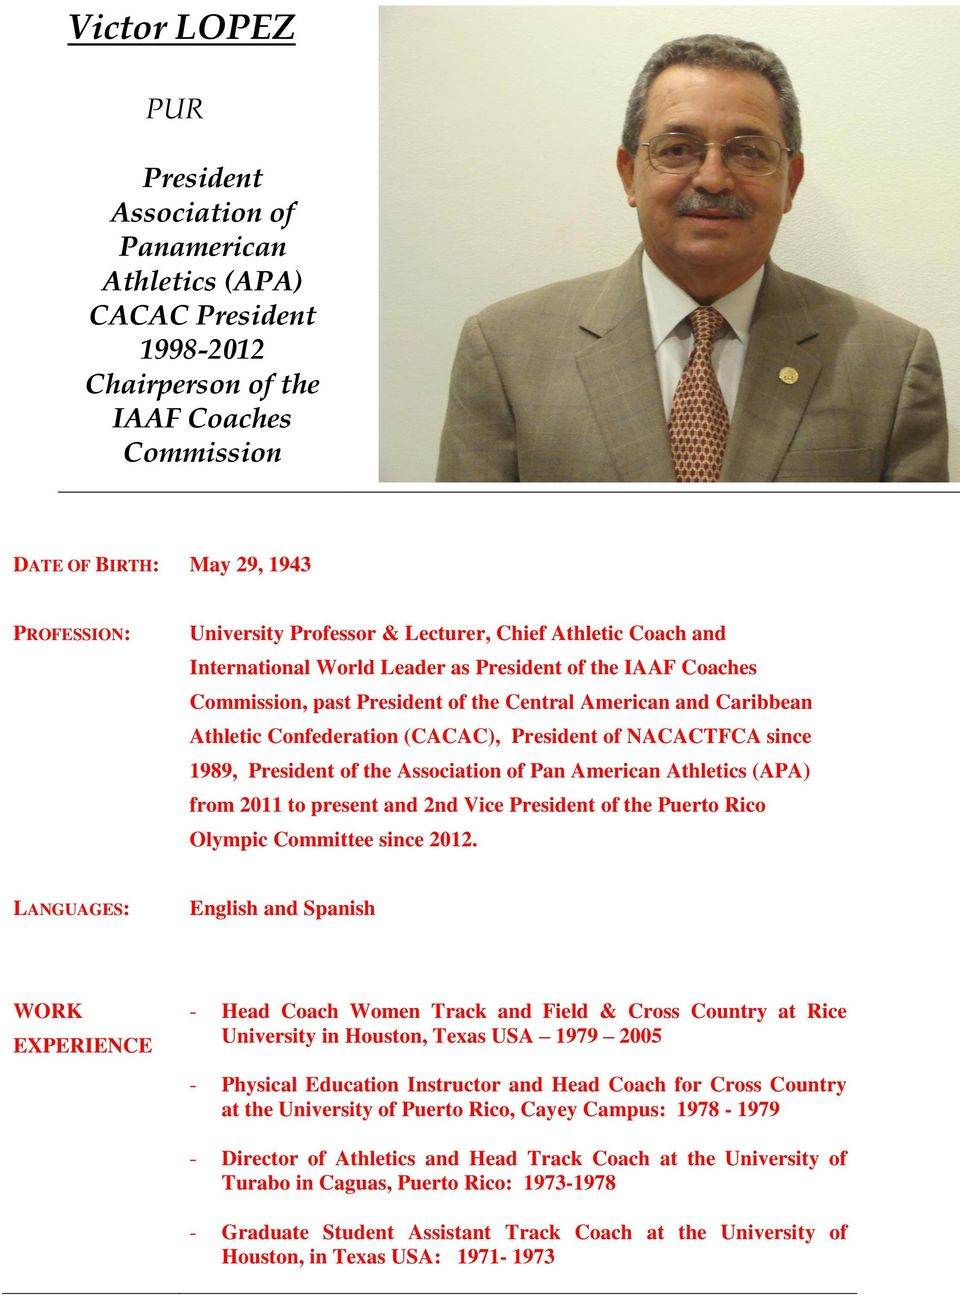 President of NACACTFCA since 1989, President of the Association of Pan American Athletics (APA) from 2011 to present and 2nd Vice President of the Puerto Rico Olympic Committee since 2012.